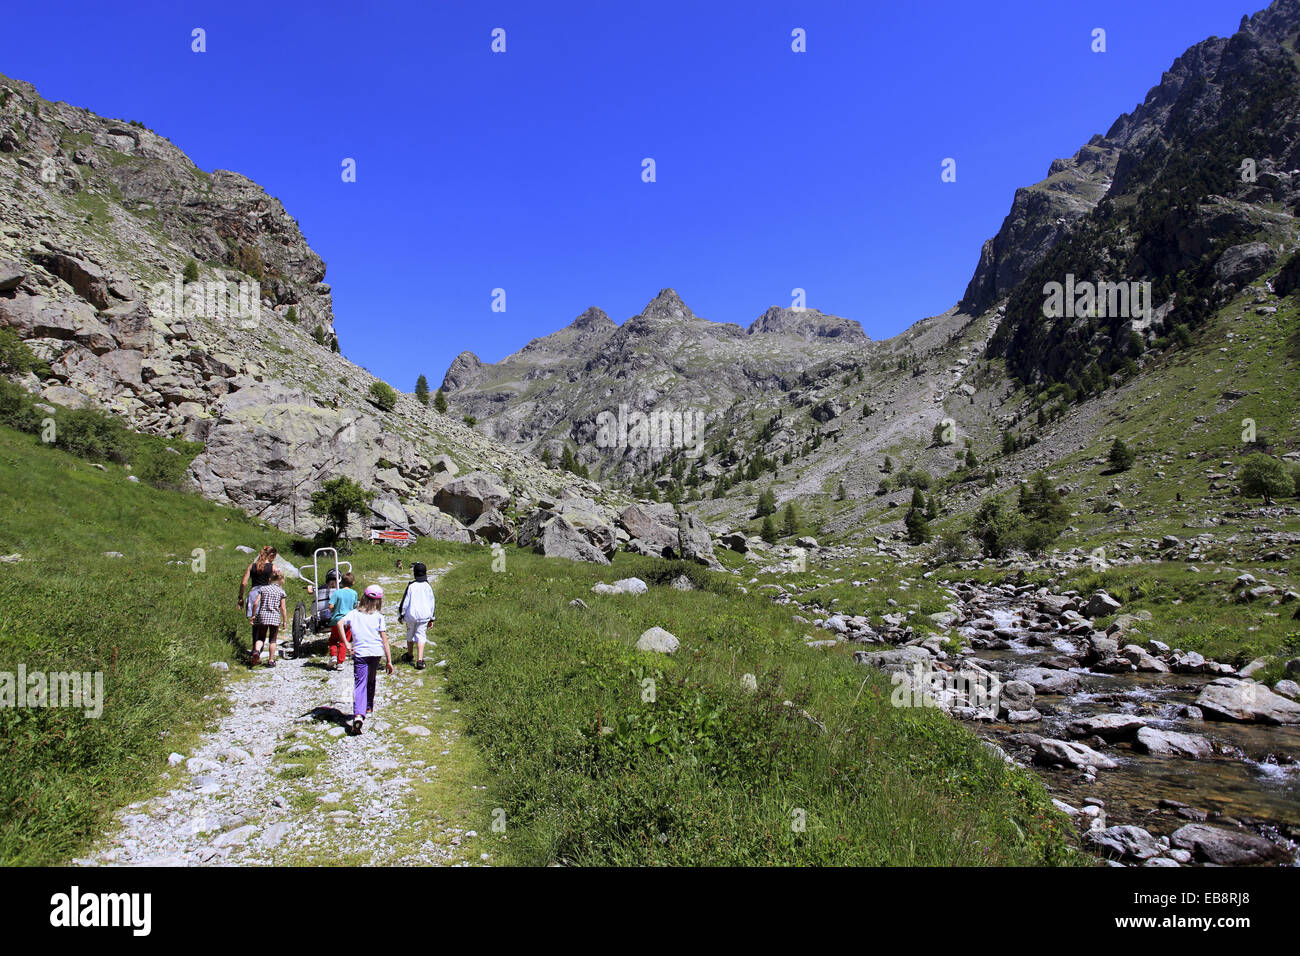 The Gordolasque valley, Mercantour national park, Alpes-Maritimes, 06, France. Stock Photo